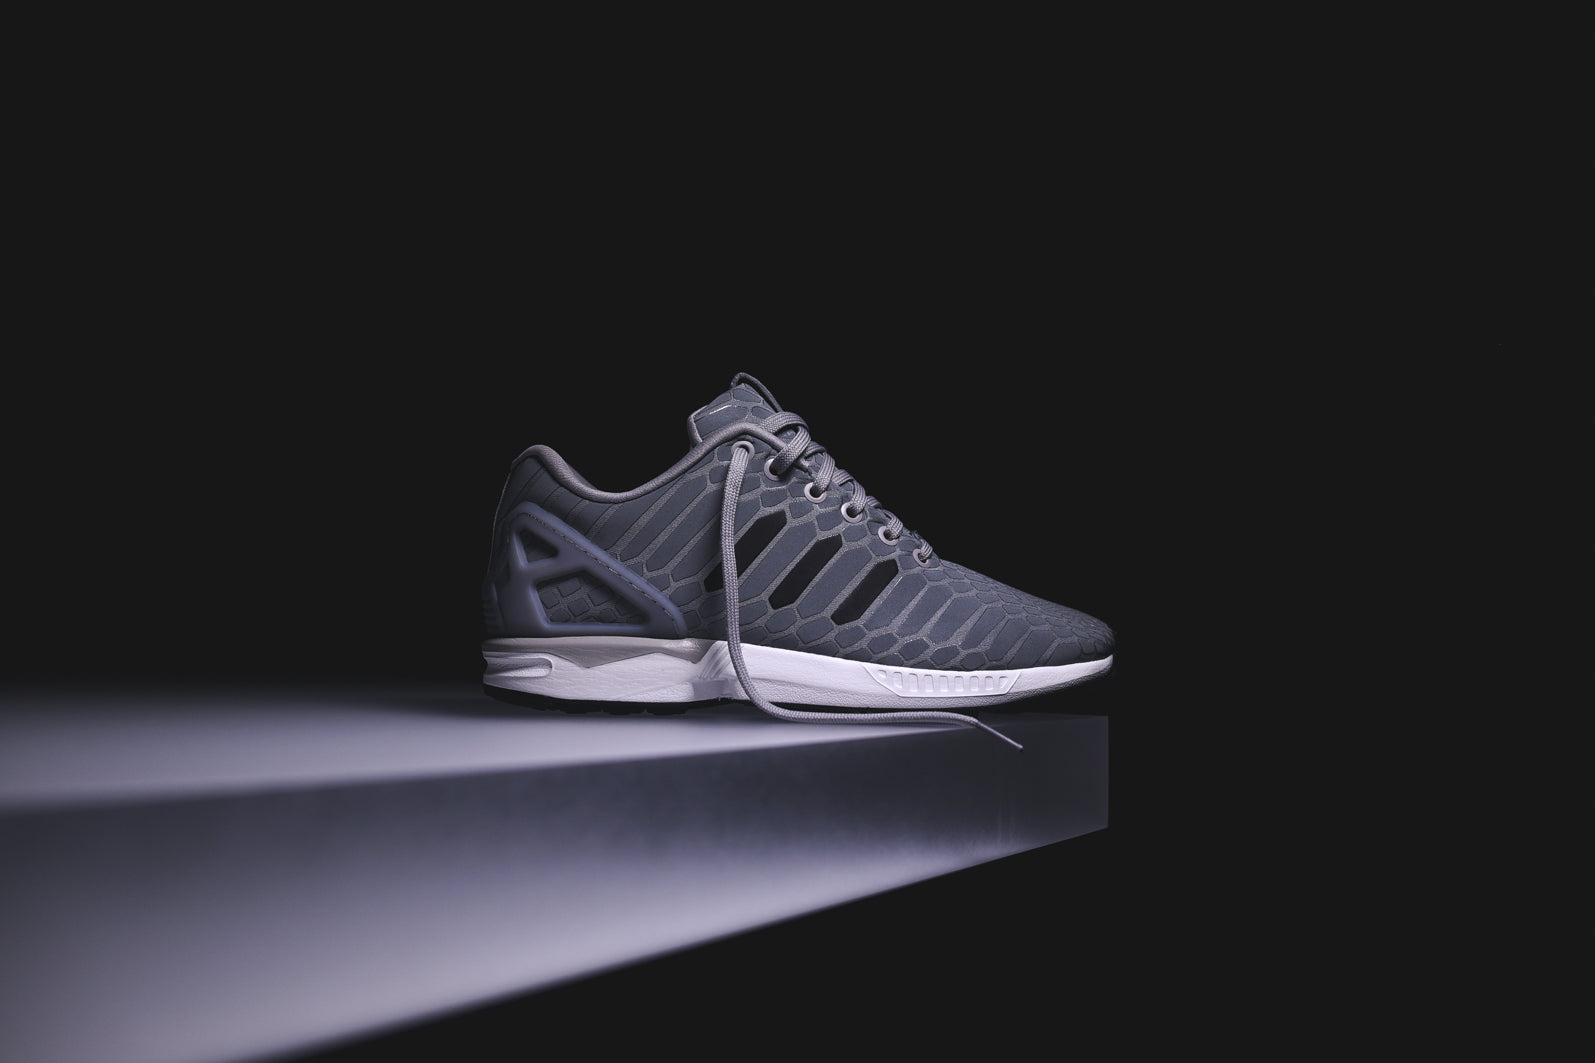 4f4cae092 The adidas Originals ZX Flux XENO - Silver is available now